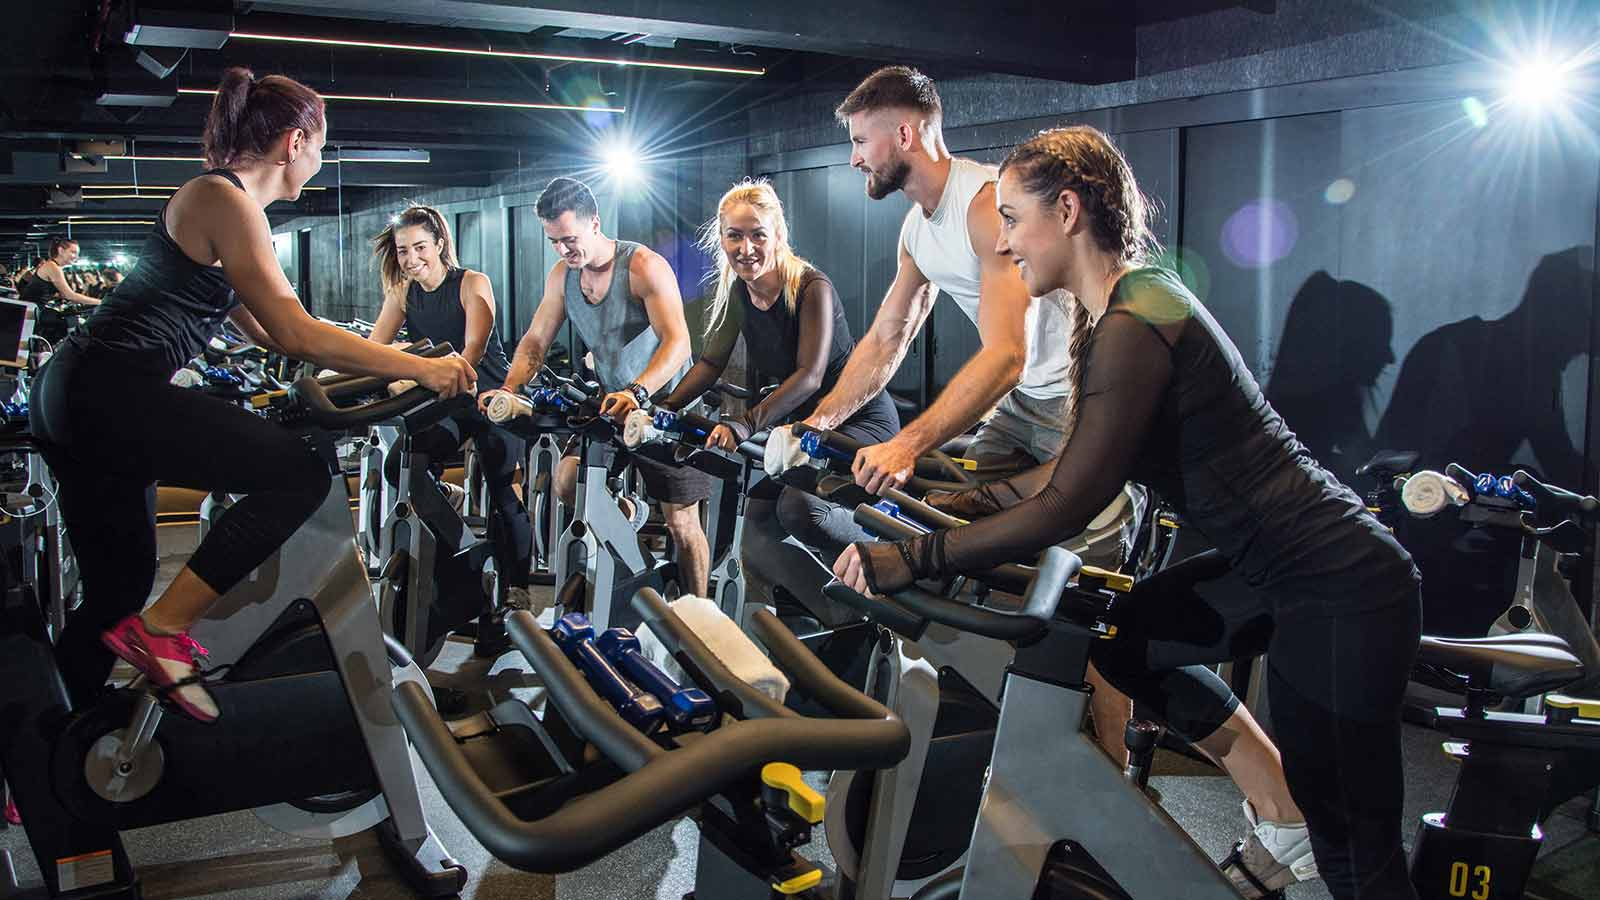 group of men and women in a cycling class following their instructors guidance